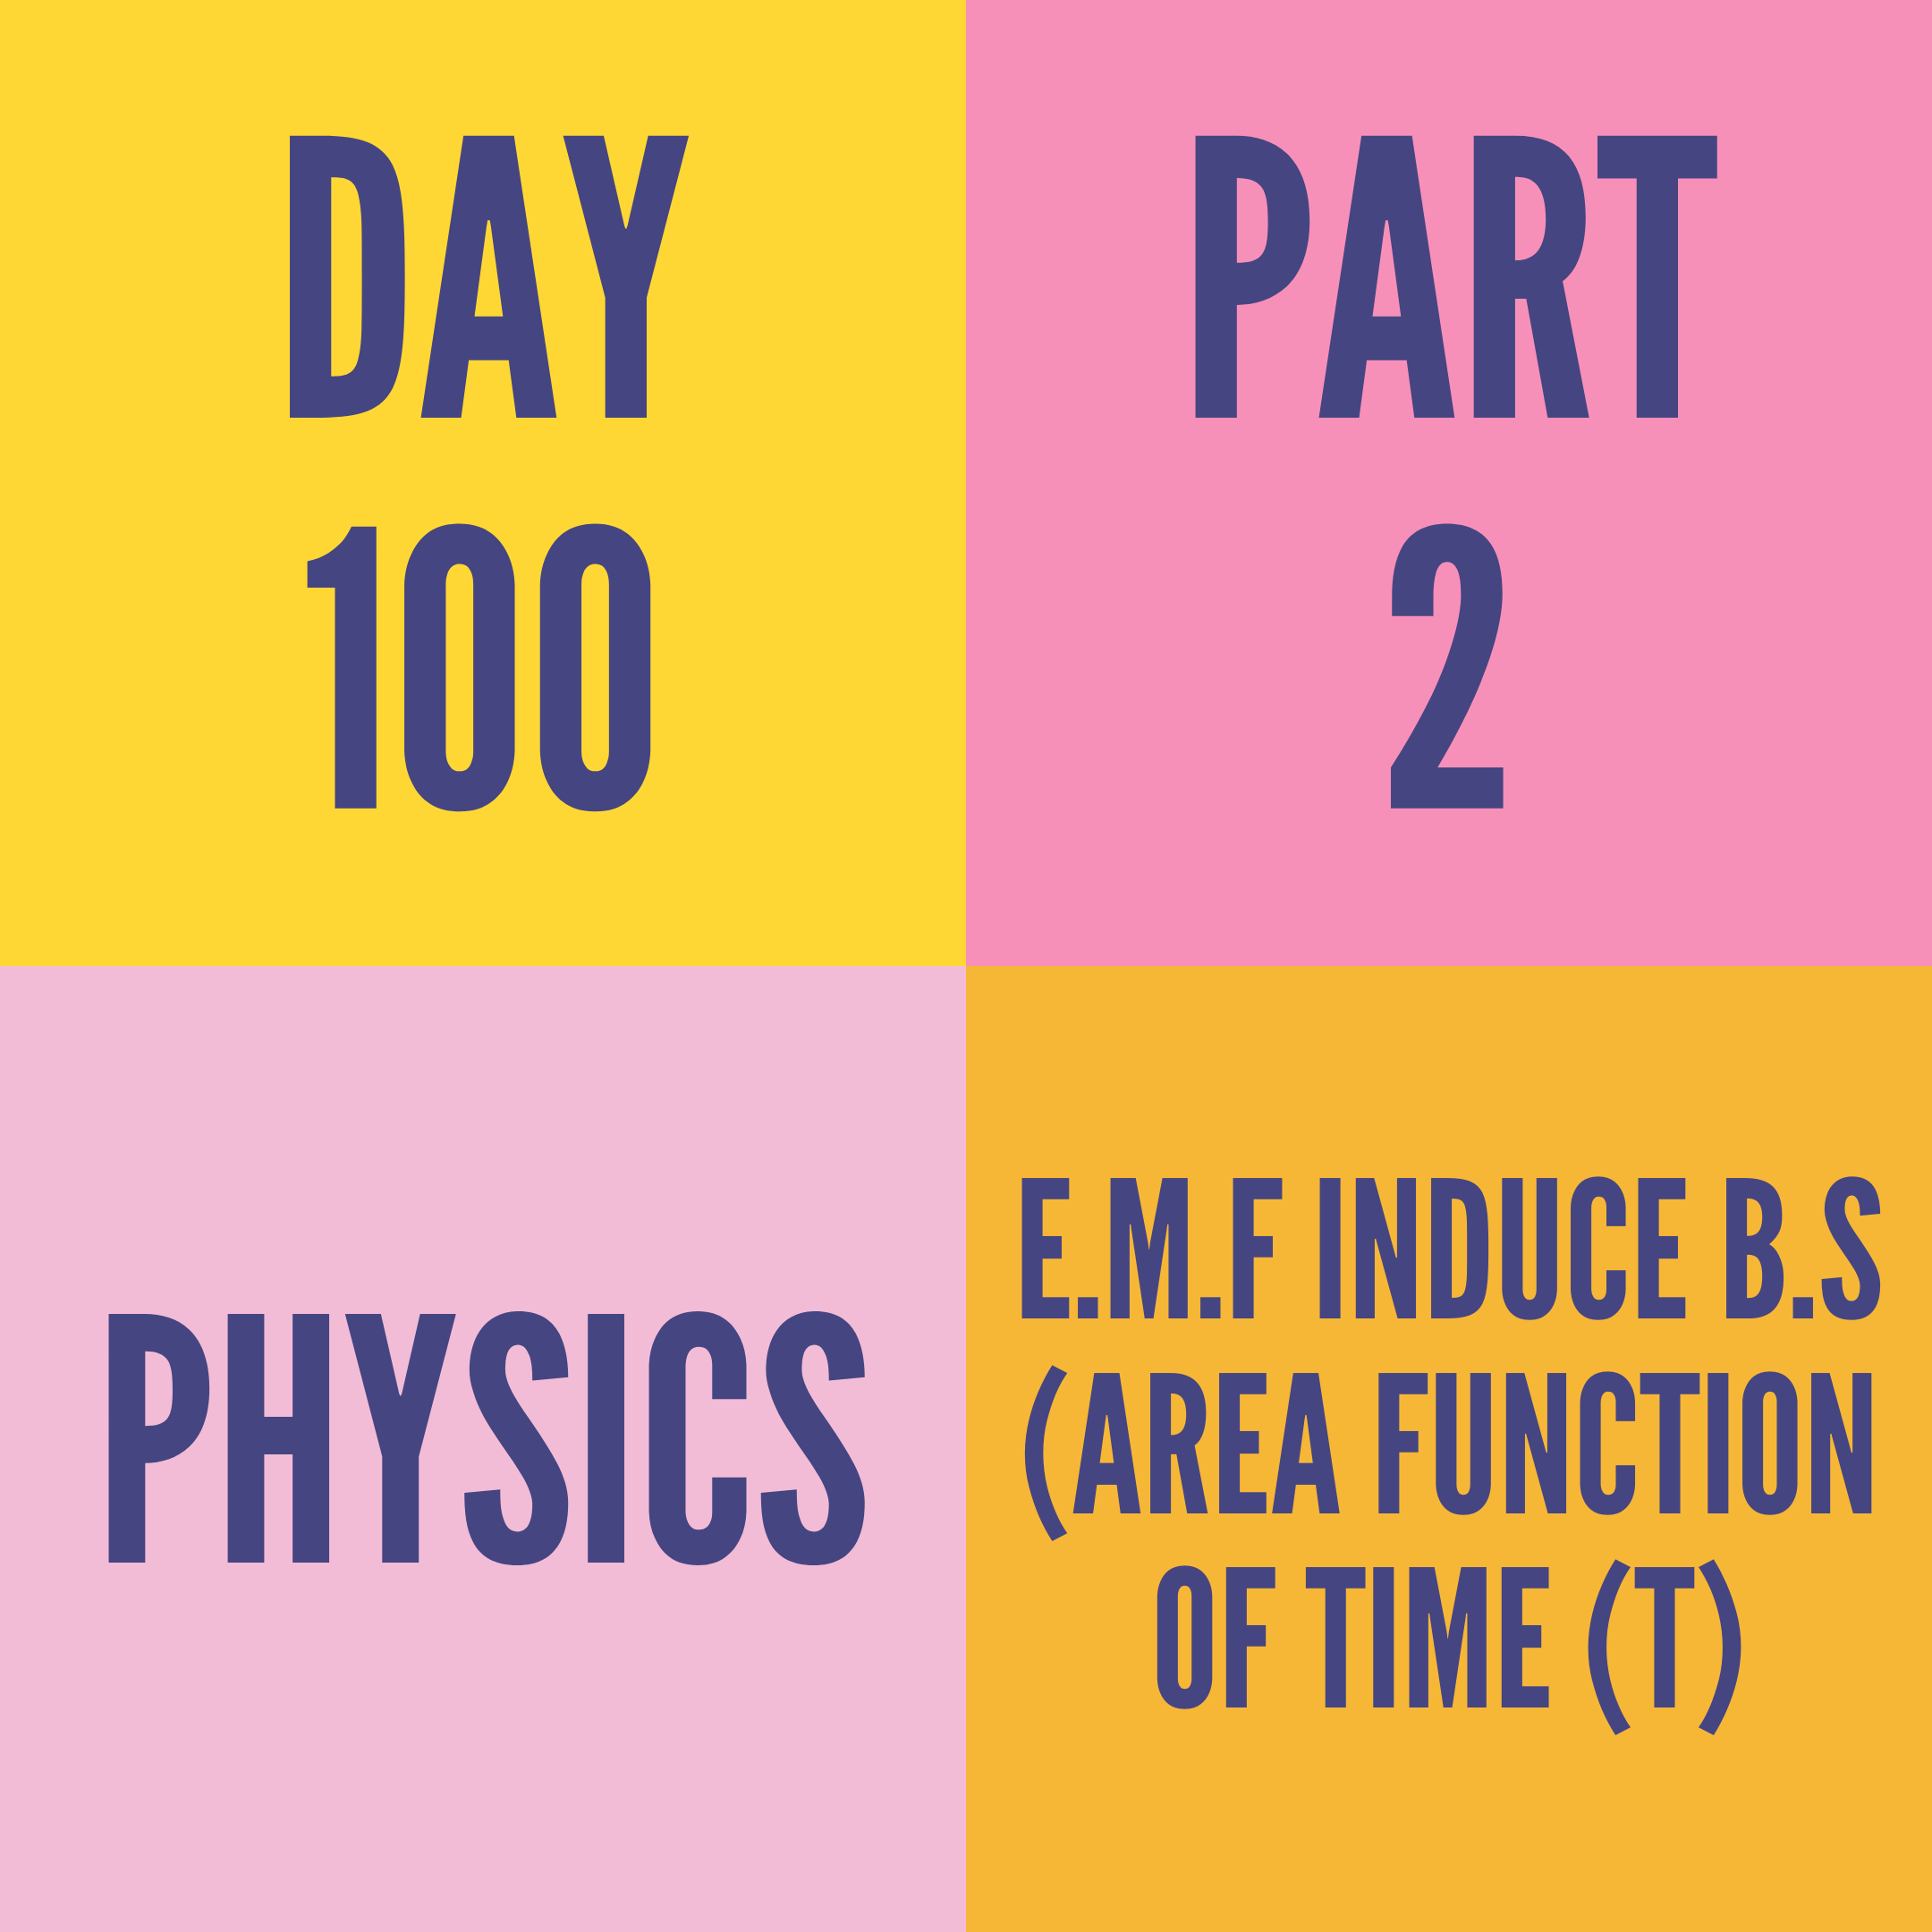 DAY-100 PART-2 E.M.F INDUCE B.S (AREA FUNCTION OF TIME (t)